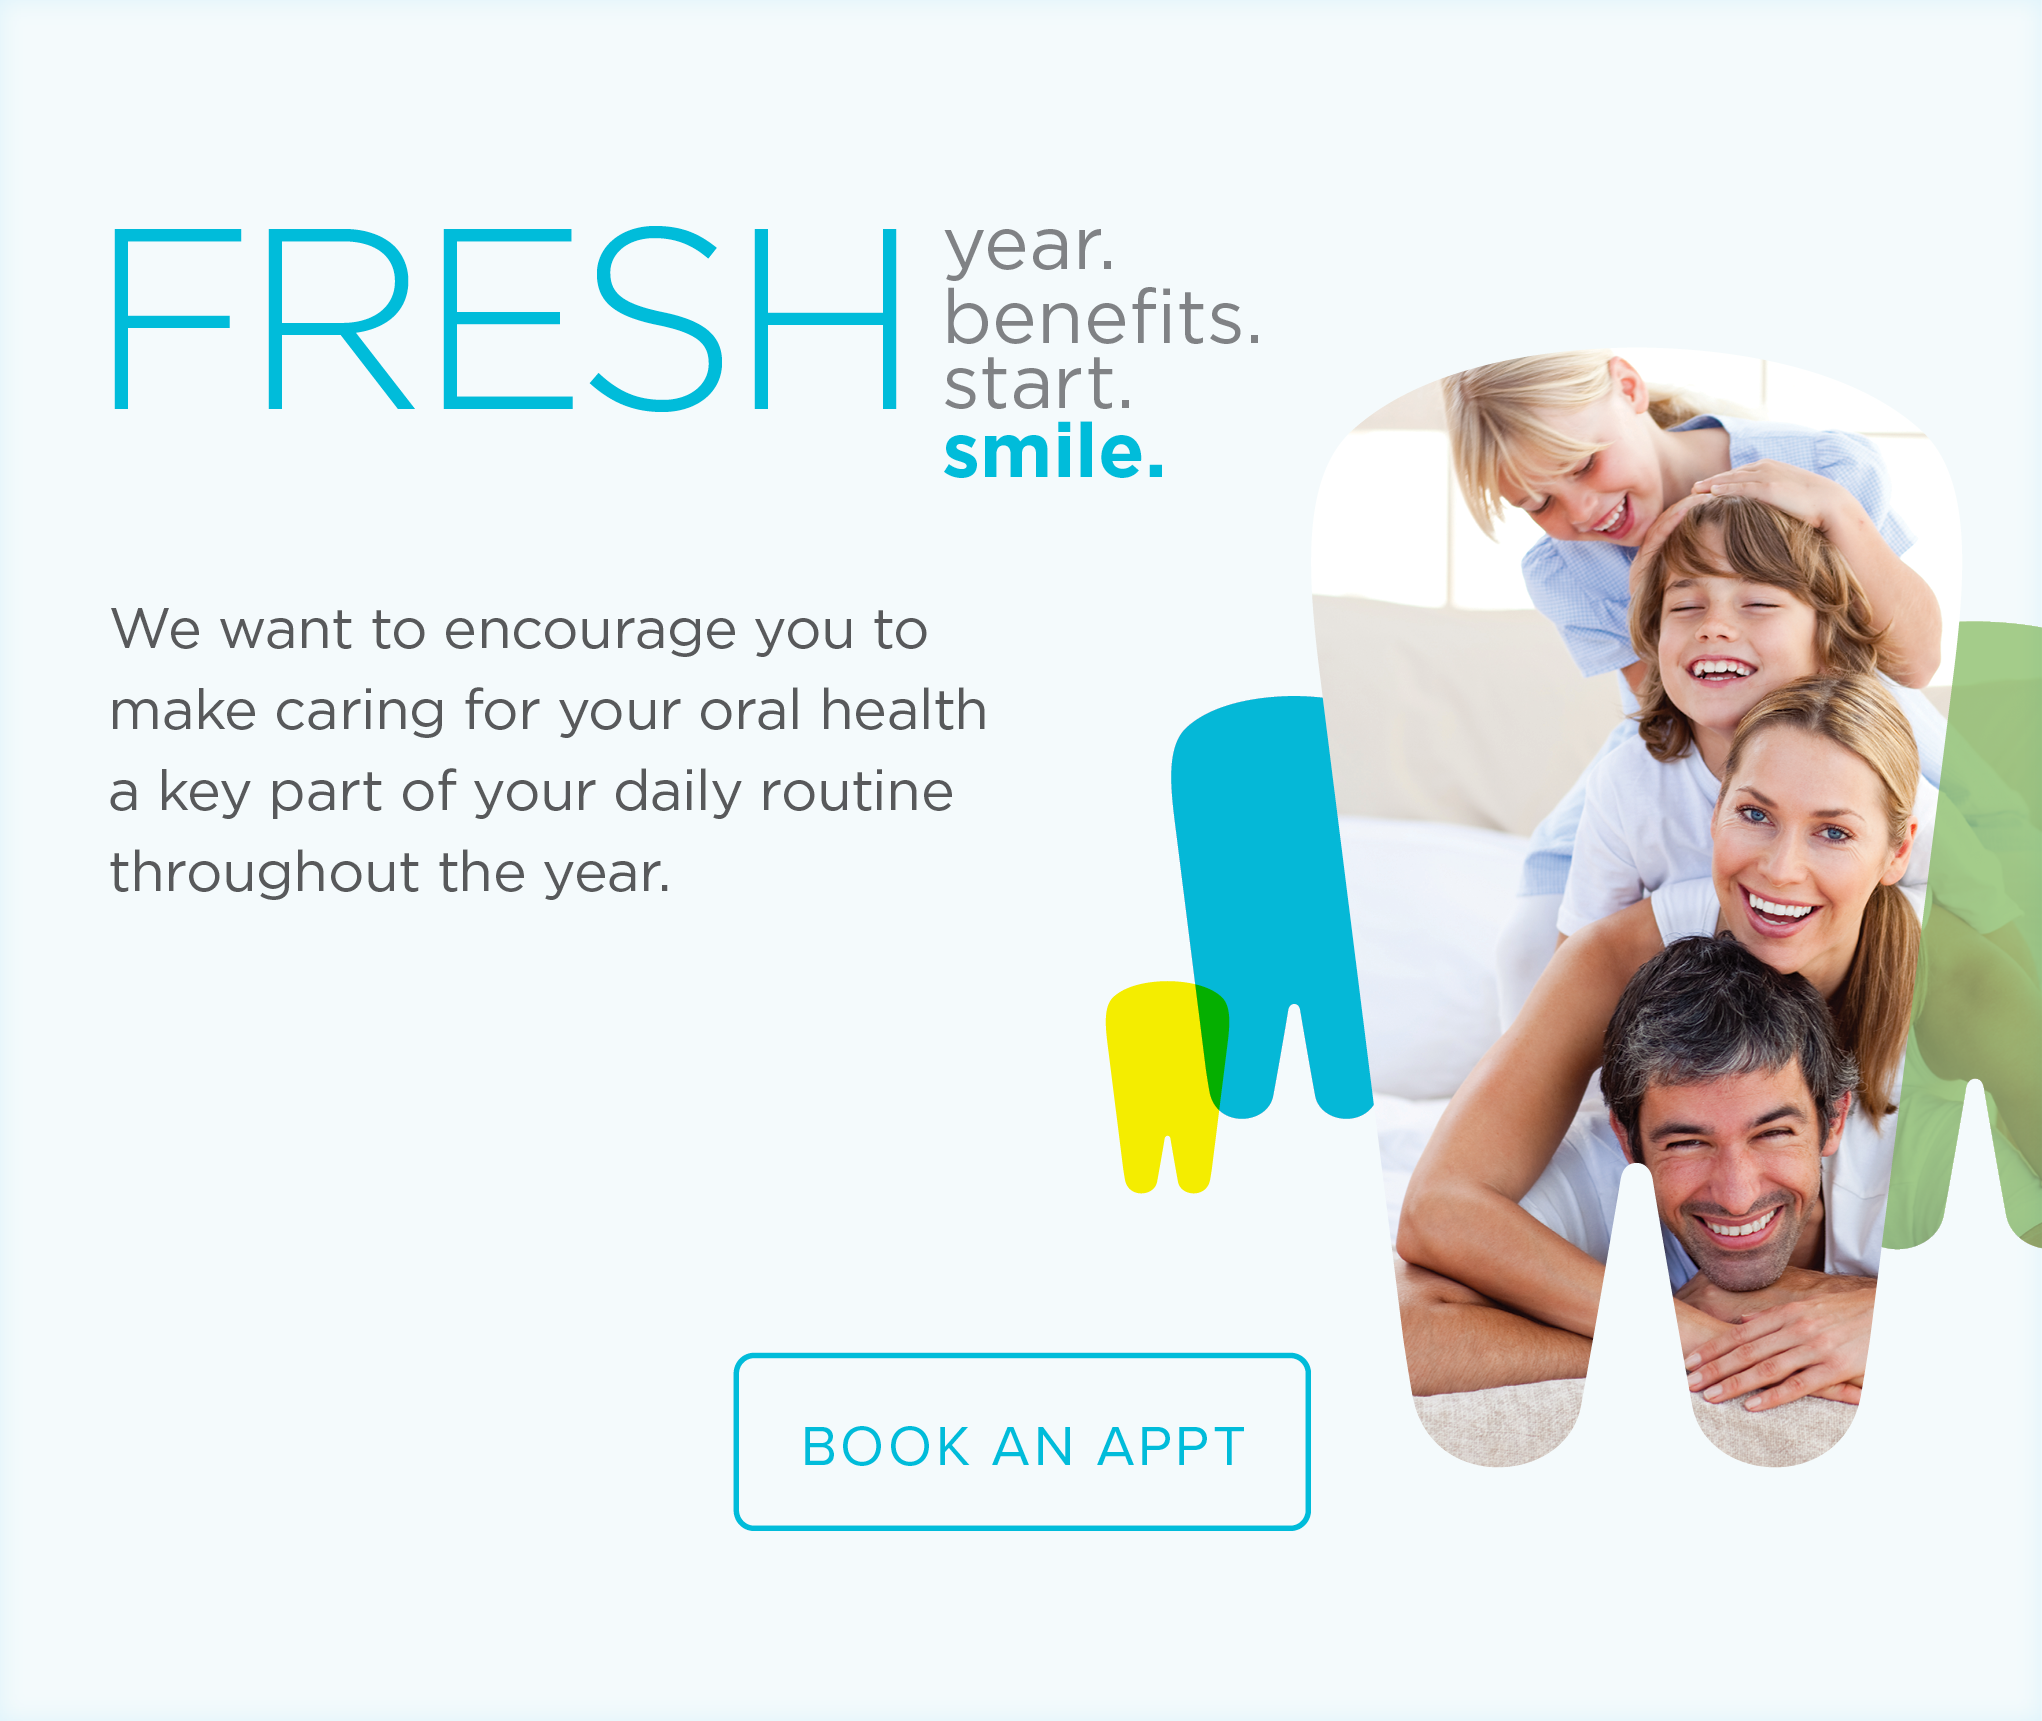 Kensington Dental Group - Make the Most of Your Benefits